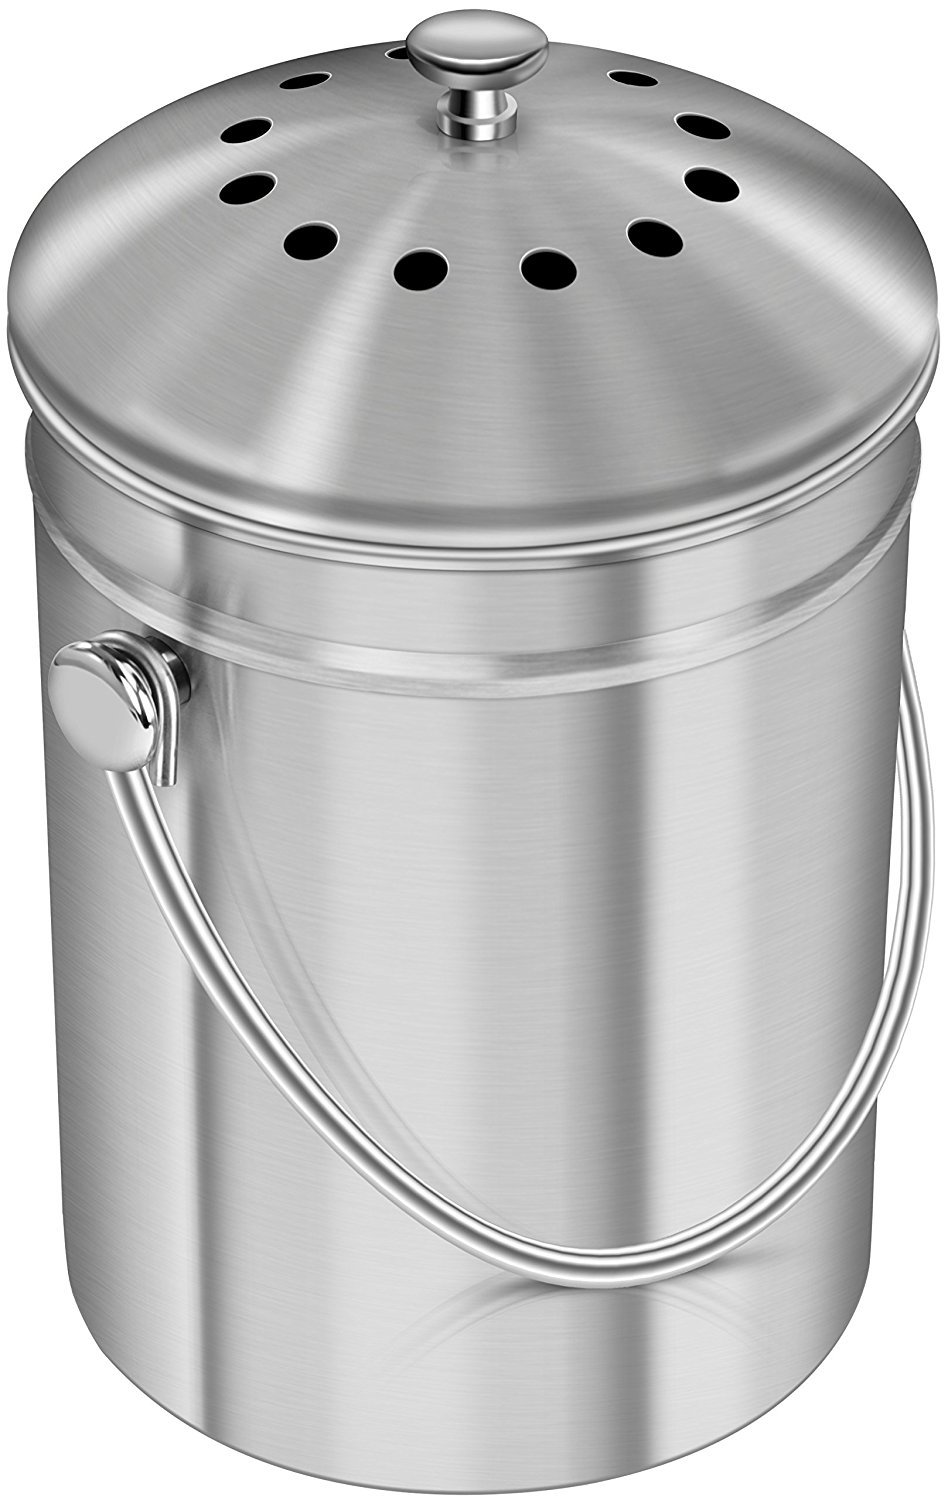 Utopia Kitchen Stainless Steel Compost Bin for Kitchen Countertop Bulk Pack - 1.3 Gallon Compost Bucket For Kitchen Pail Compost with Lid - Includes 1 Spare Charcoal Filter (6-Pack)